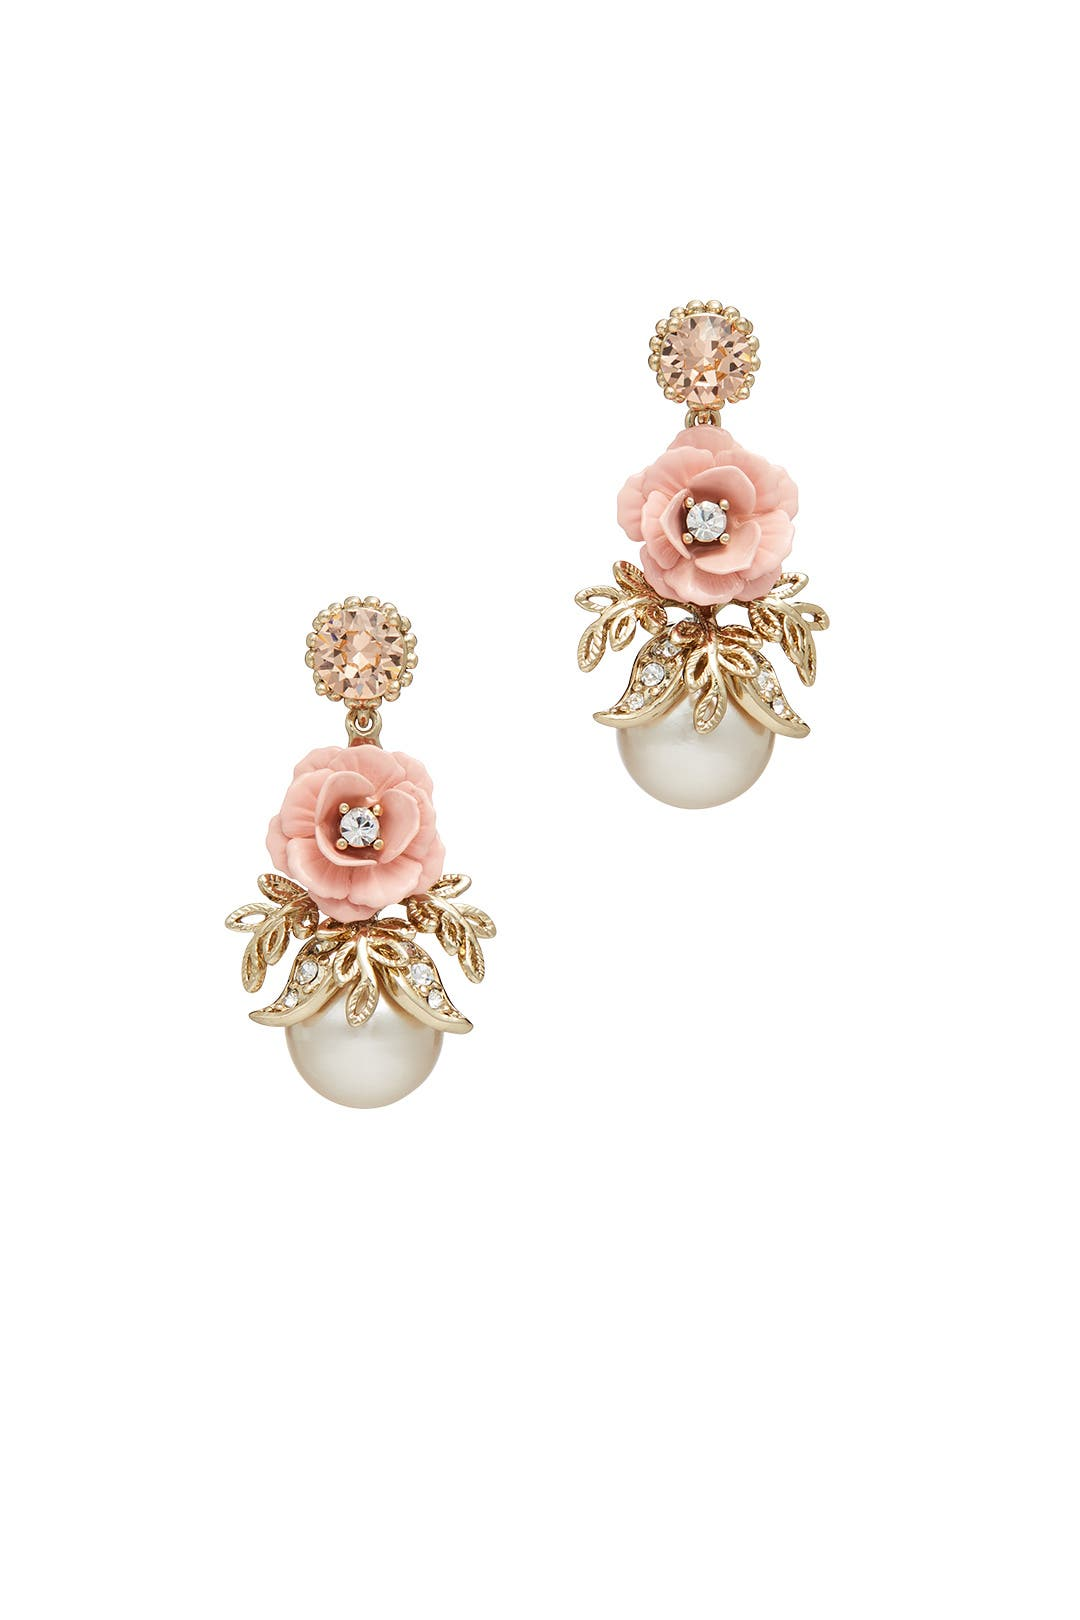 Blush Spring Meadow Earrings By Marchesa Jewelry For $10  Rent The Runway